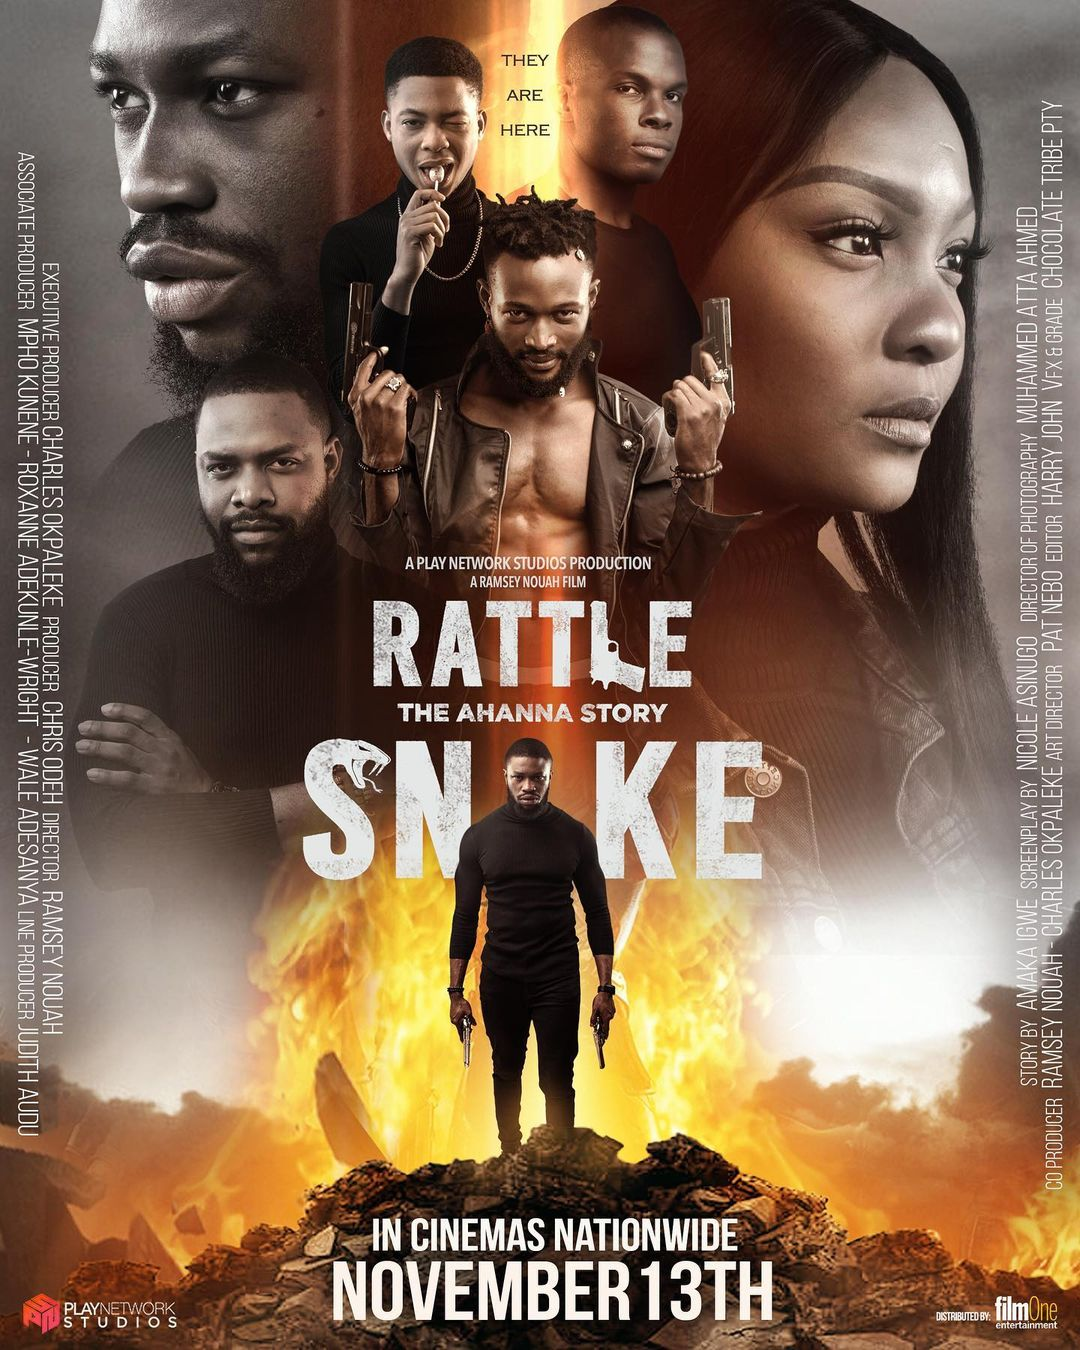 124037229 1543228275861646 4819321997327807058 n - Rattlesnake: Projections for a N19.5 Million Opening Weekend